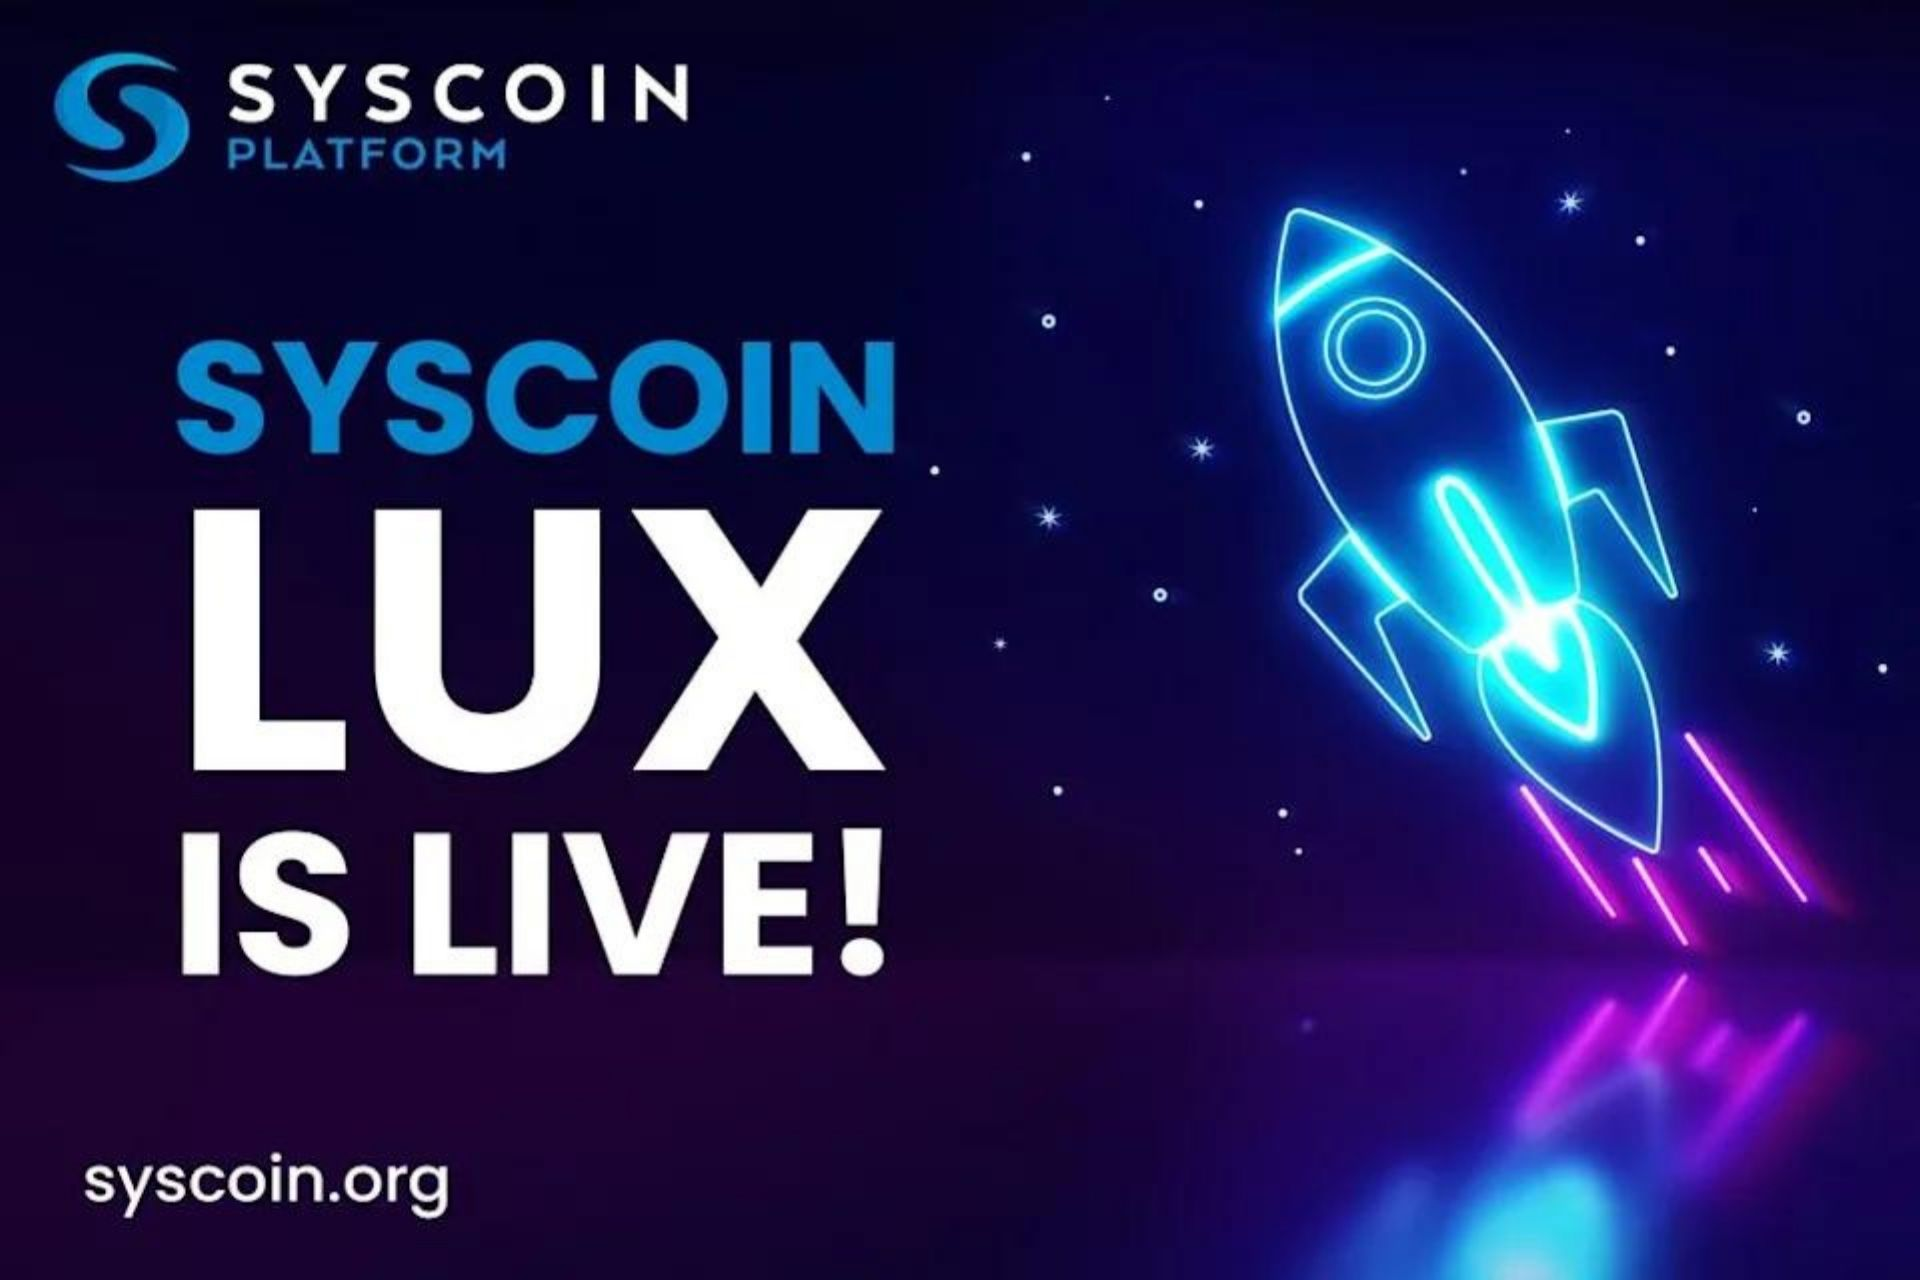 Syscoin LUX Goes Live: Blockchain Foundry Has Released the Next Generation of Blockchain Tech for NFTs, Ultra-fast Payments, and Security